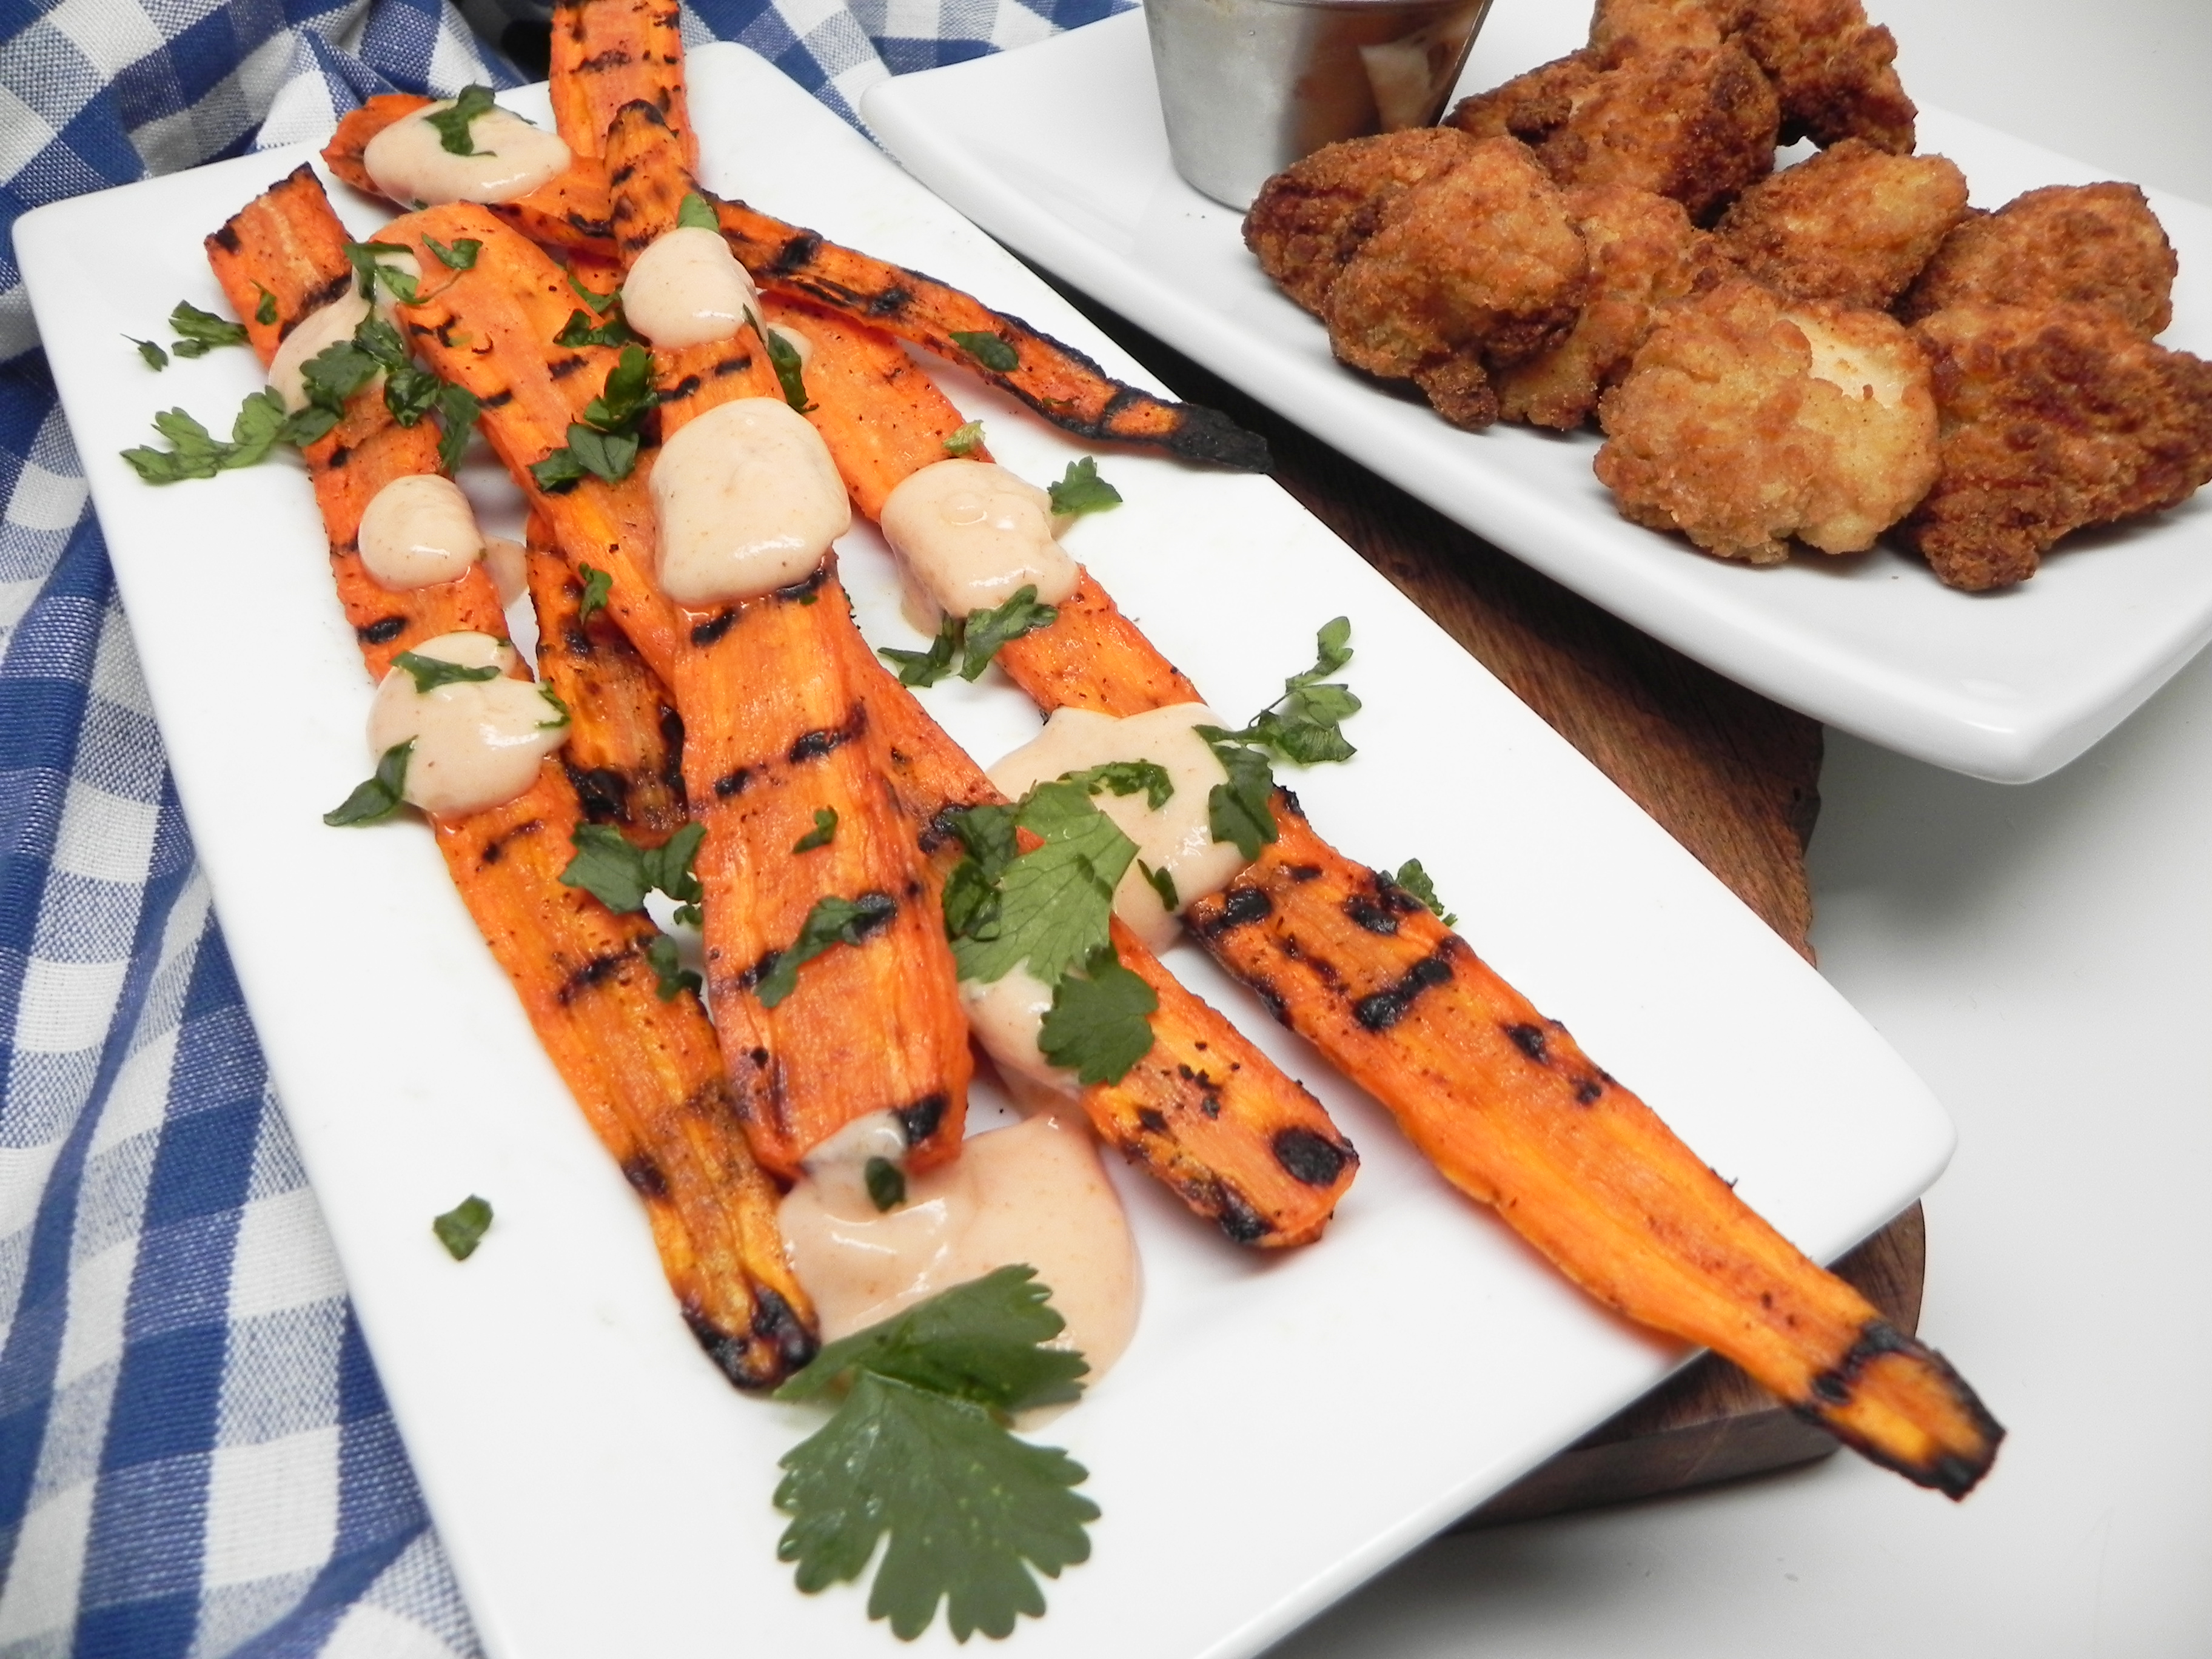 Grilled Carrots with Creamy Sriracha Sauce